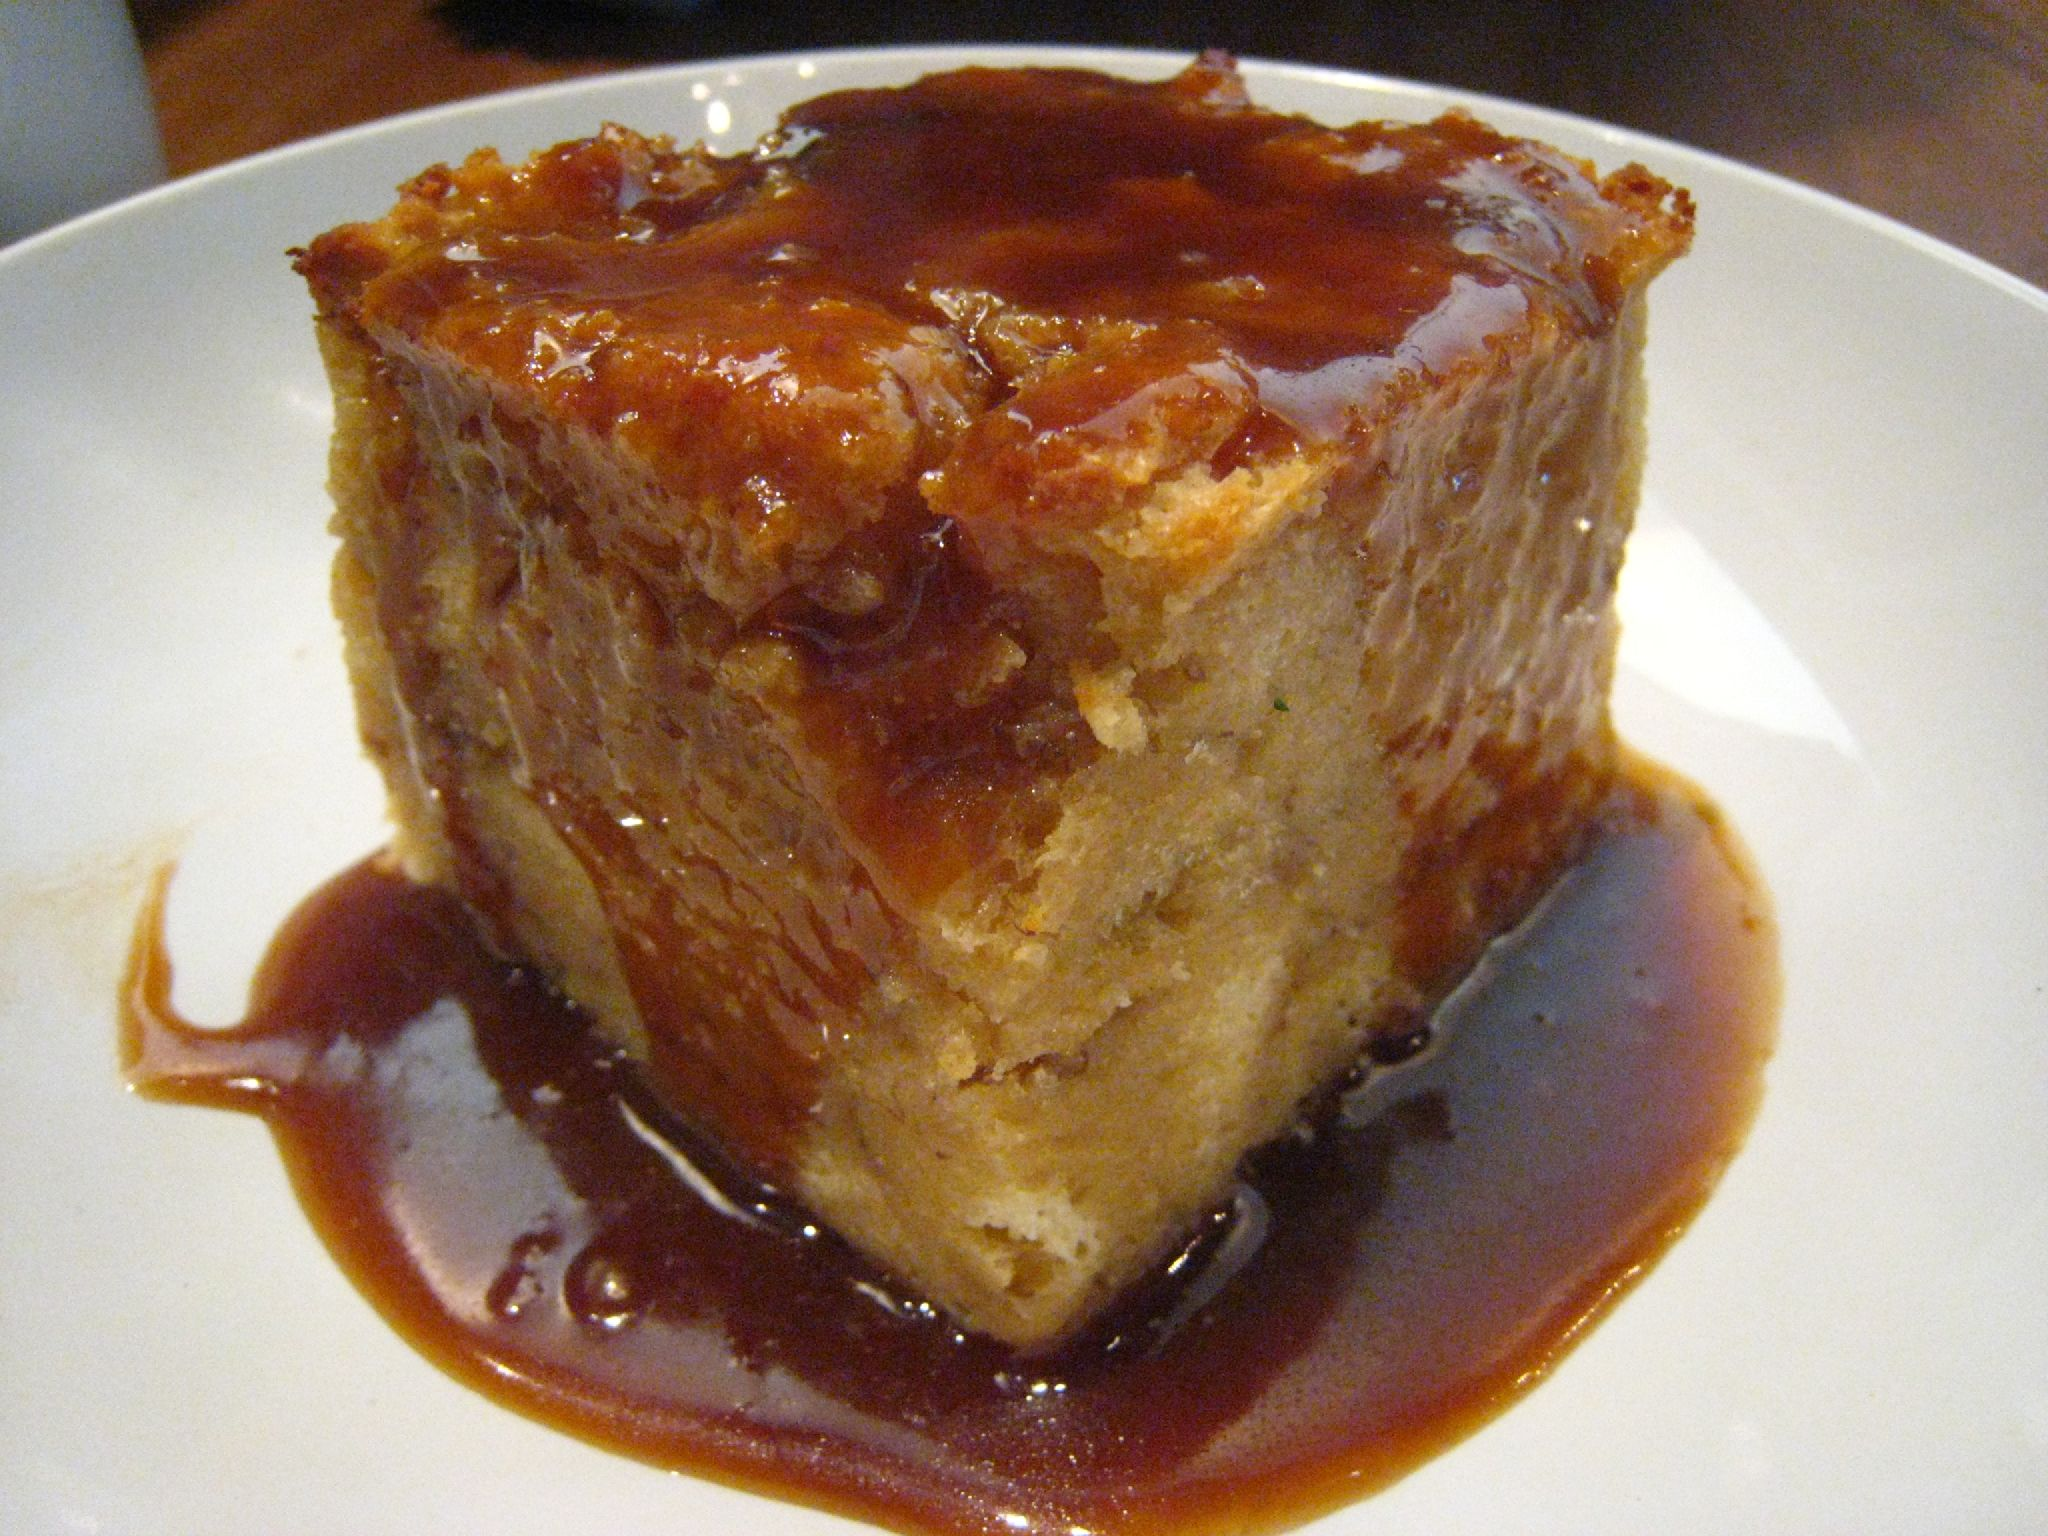 File:Banana foster bread pudding with sauce.jpg ...